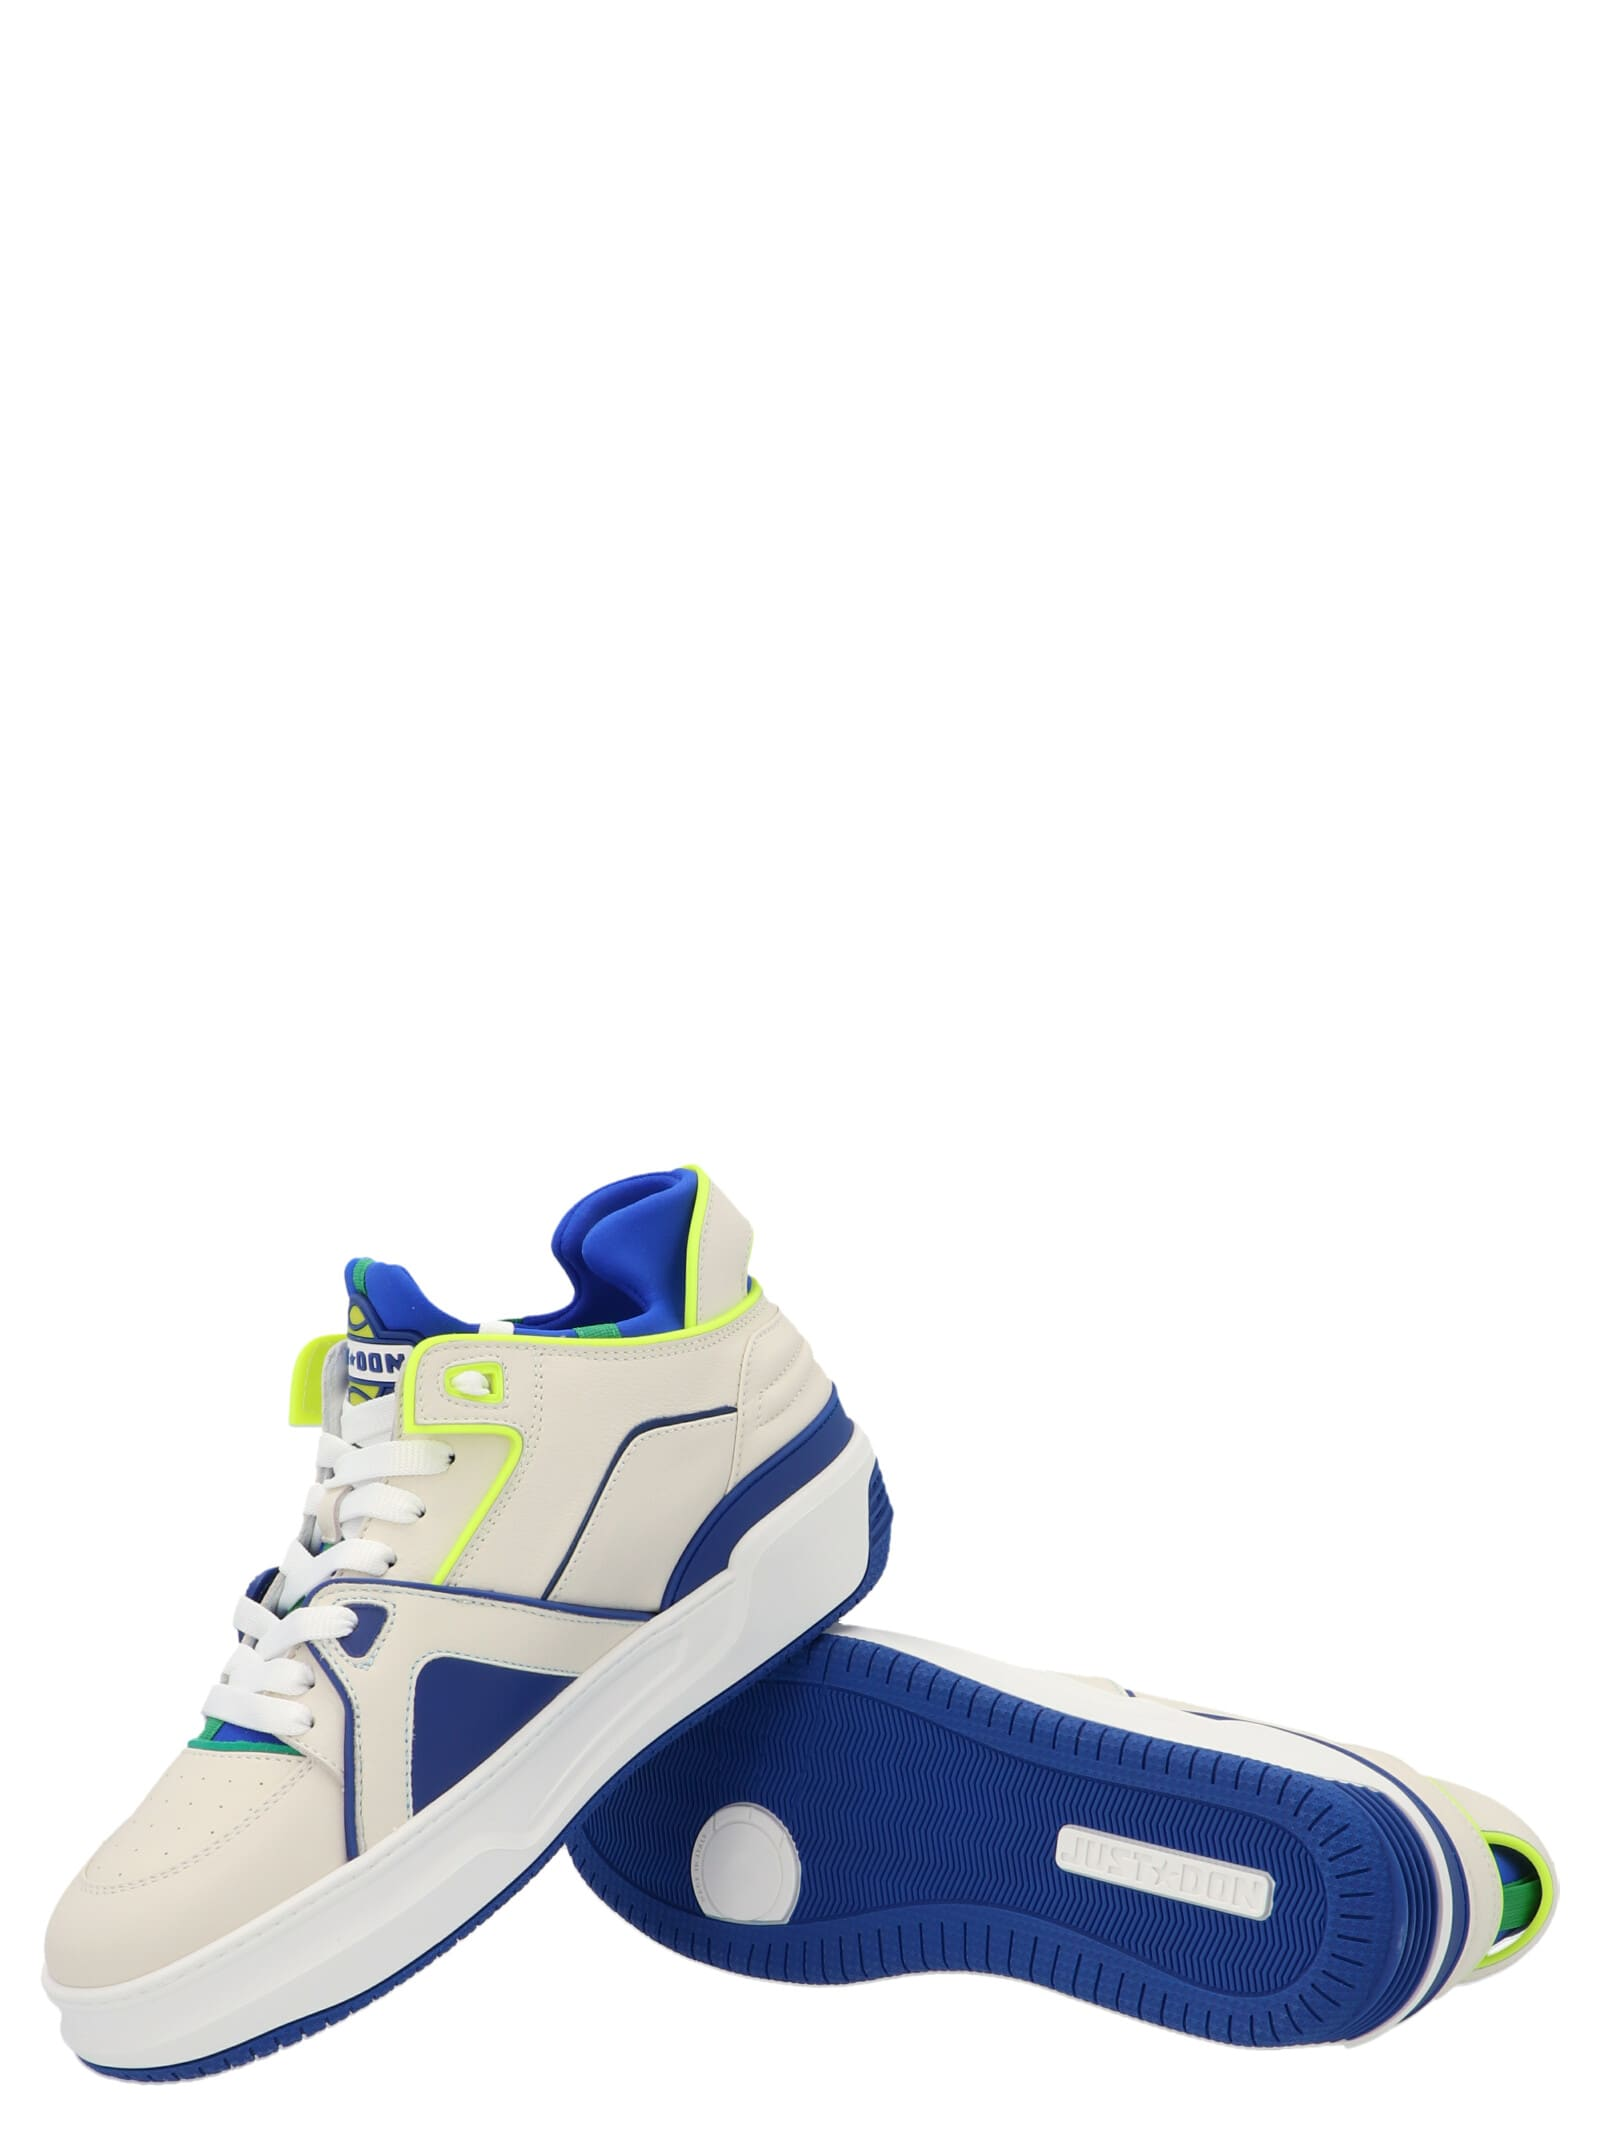 courtside Tennis Mid Jd2 Shoes